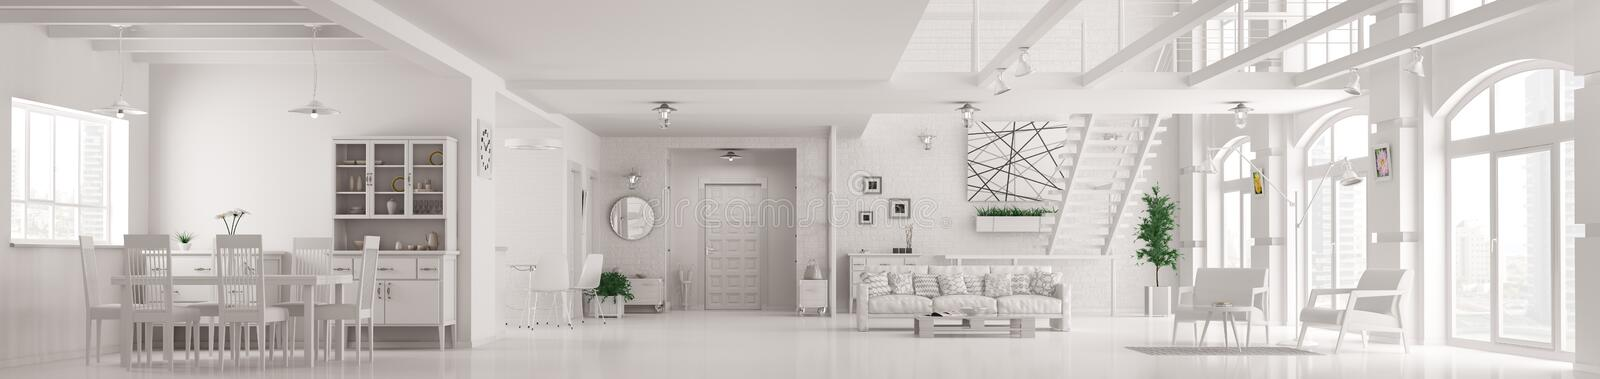 Download Modern White Loft Apartment Interior Panorama 3d Render Stock Illustration